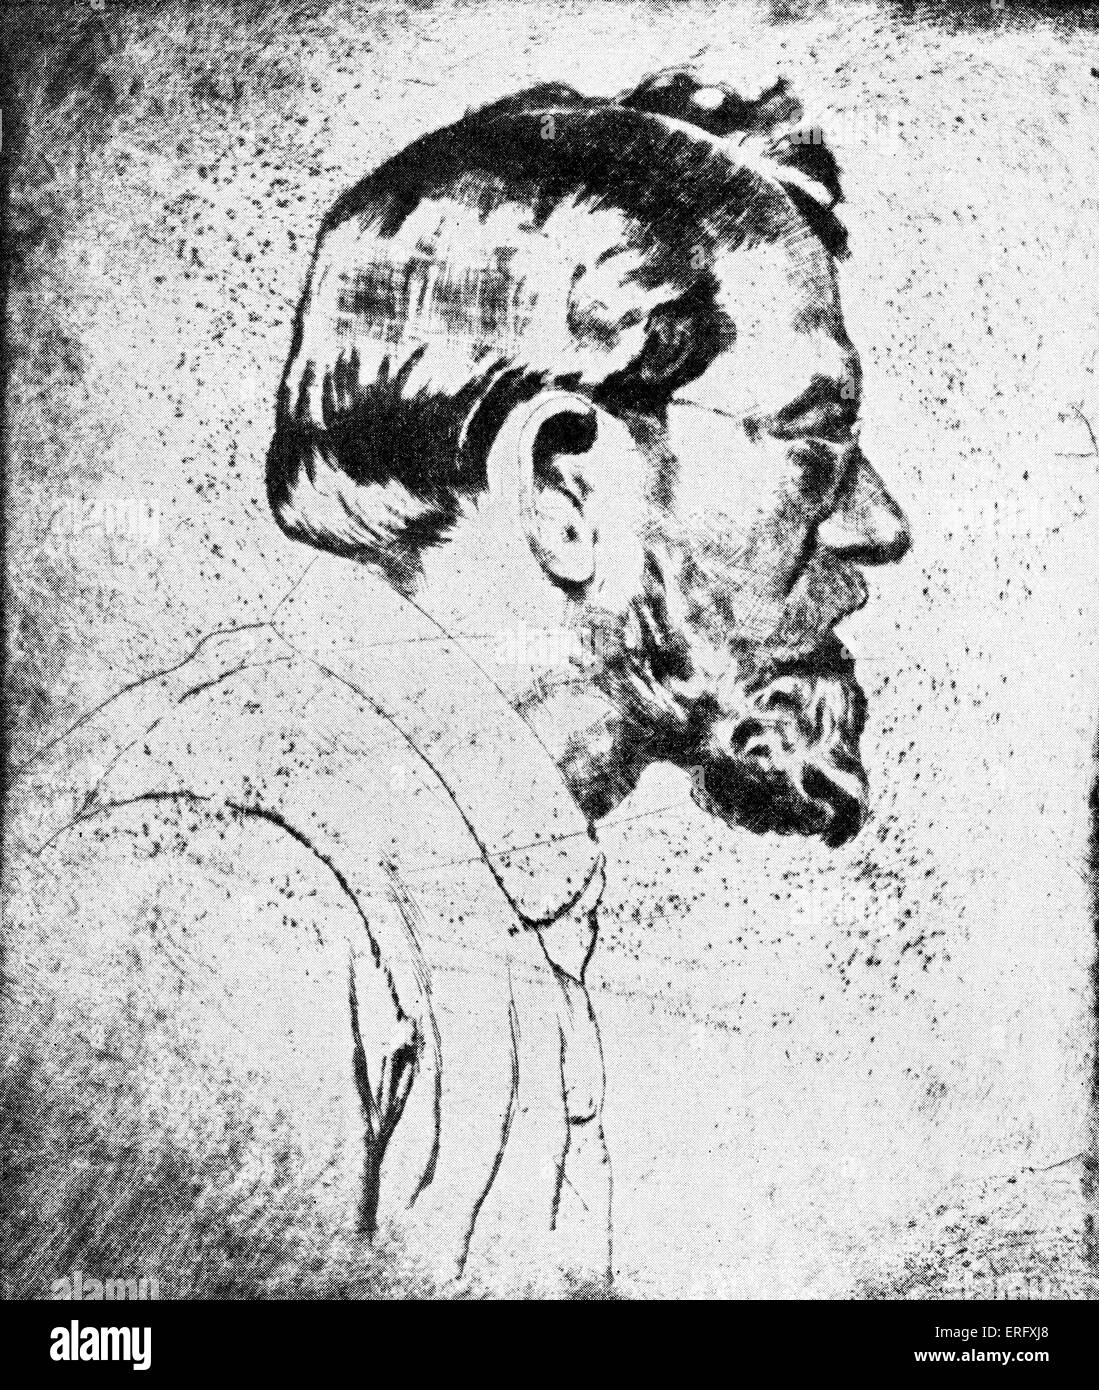 Emil Orlik - self-portrait drawn in 1910.  Czech artist, etcher and lithographer:  21 July 1870 – 28 September  - Stock Image